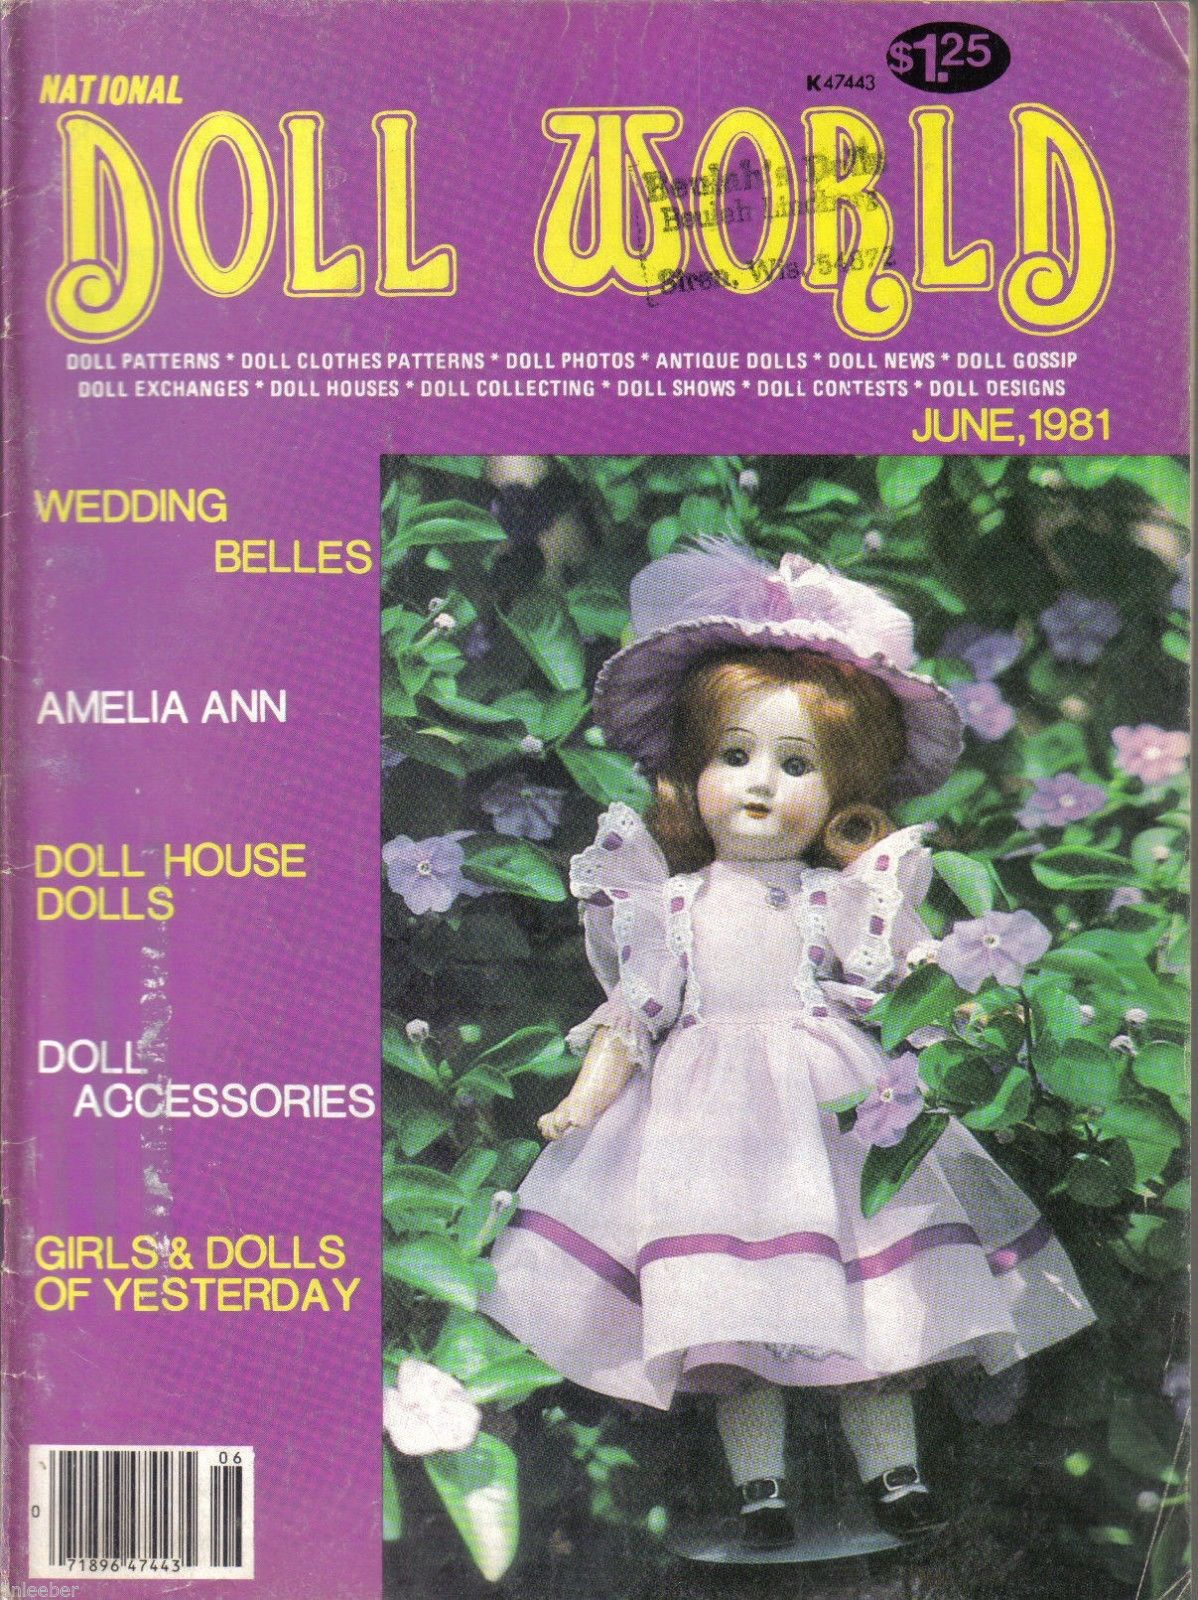 Primary image for National Doll World Magazine May/ June 1981-Wedding Belles;Amelia Ann;Doll House